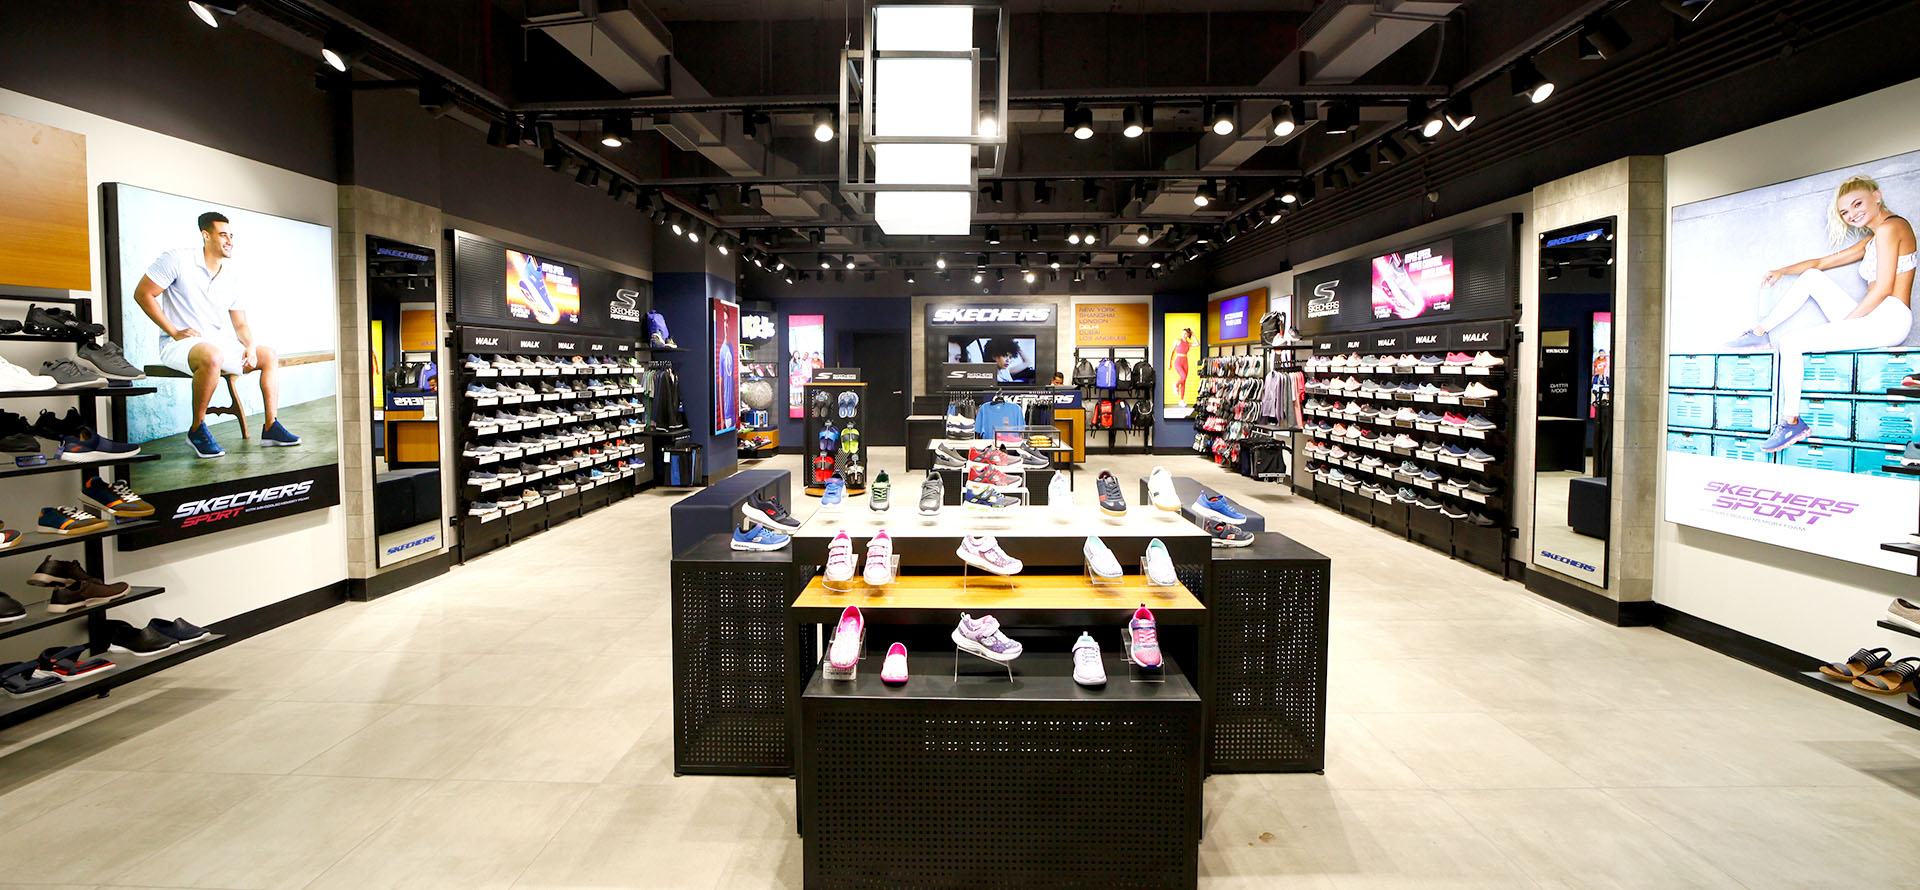 Skechers Showroom - Sports Shoes and